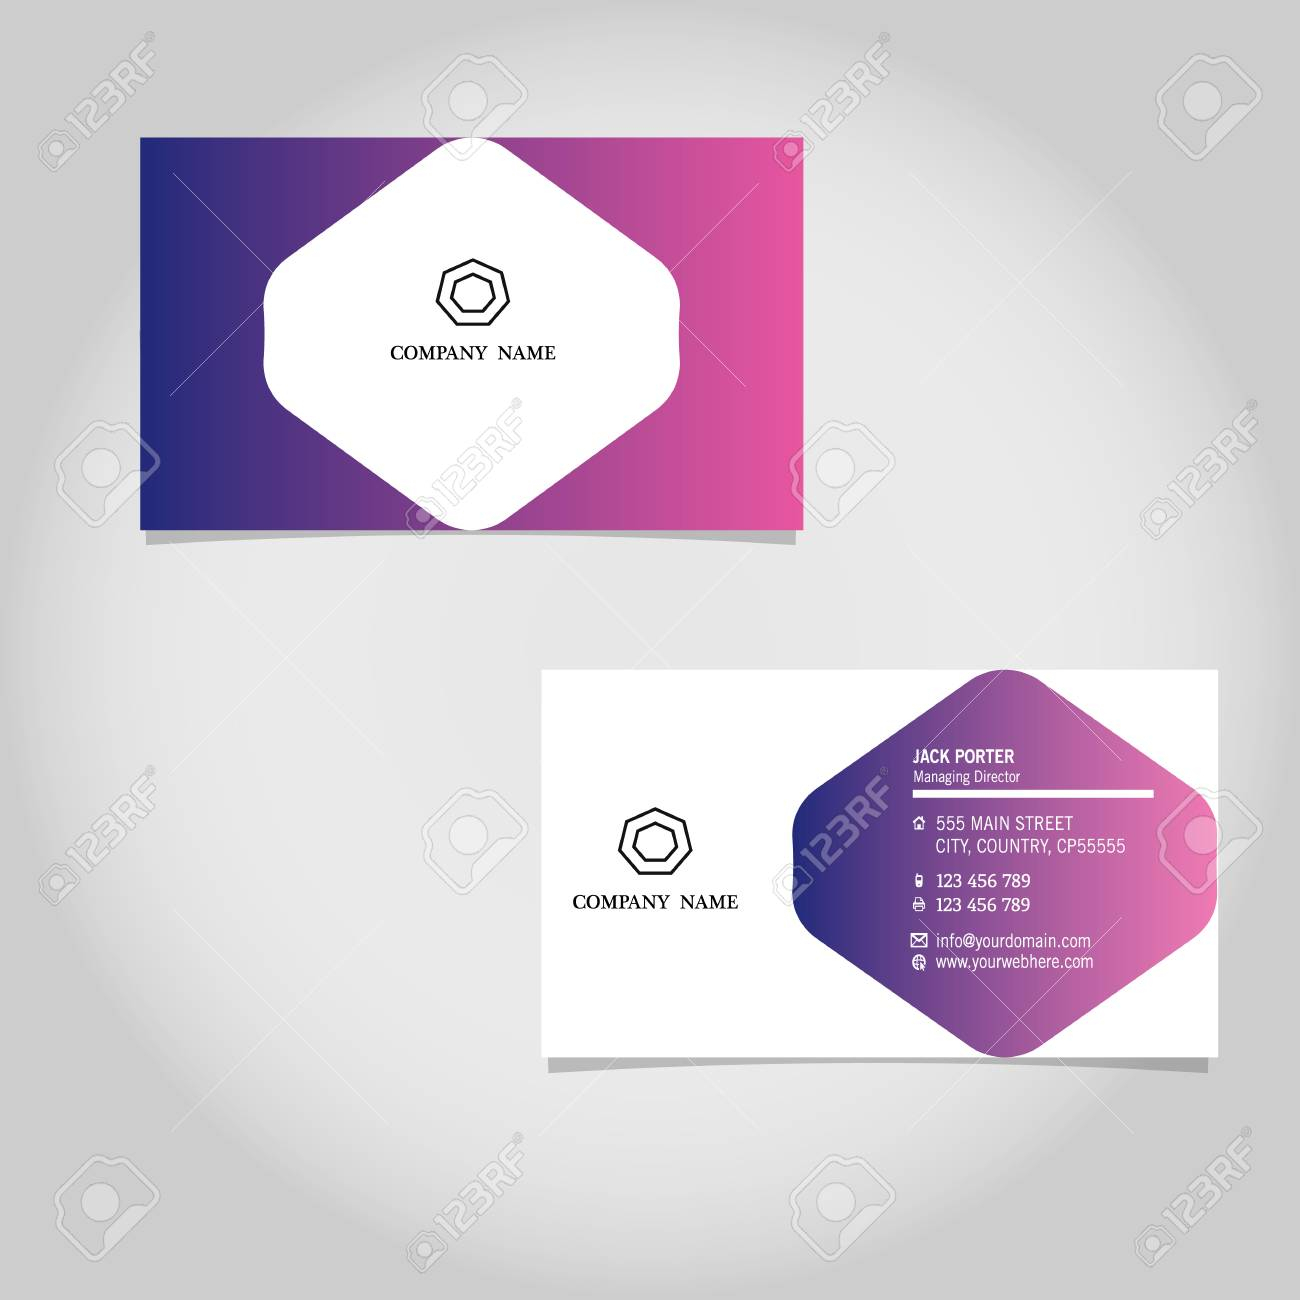 Vector Business Card Template Design Adobe Illustrator Throughout Adobe Illustrator Business Card Template